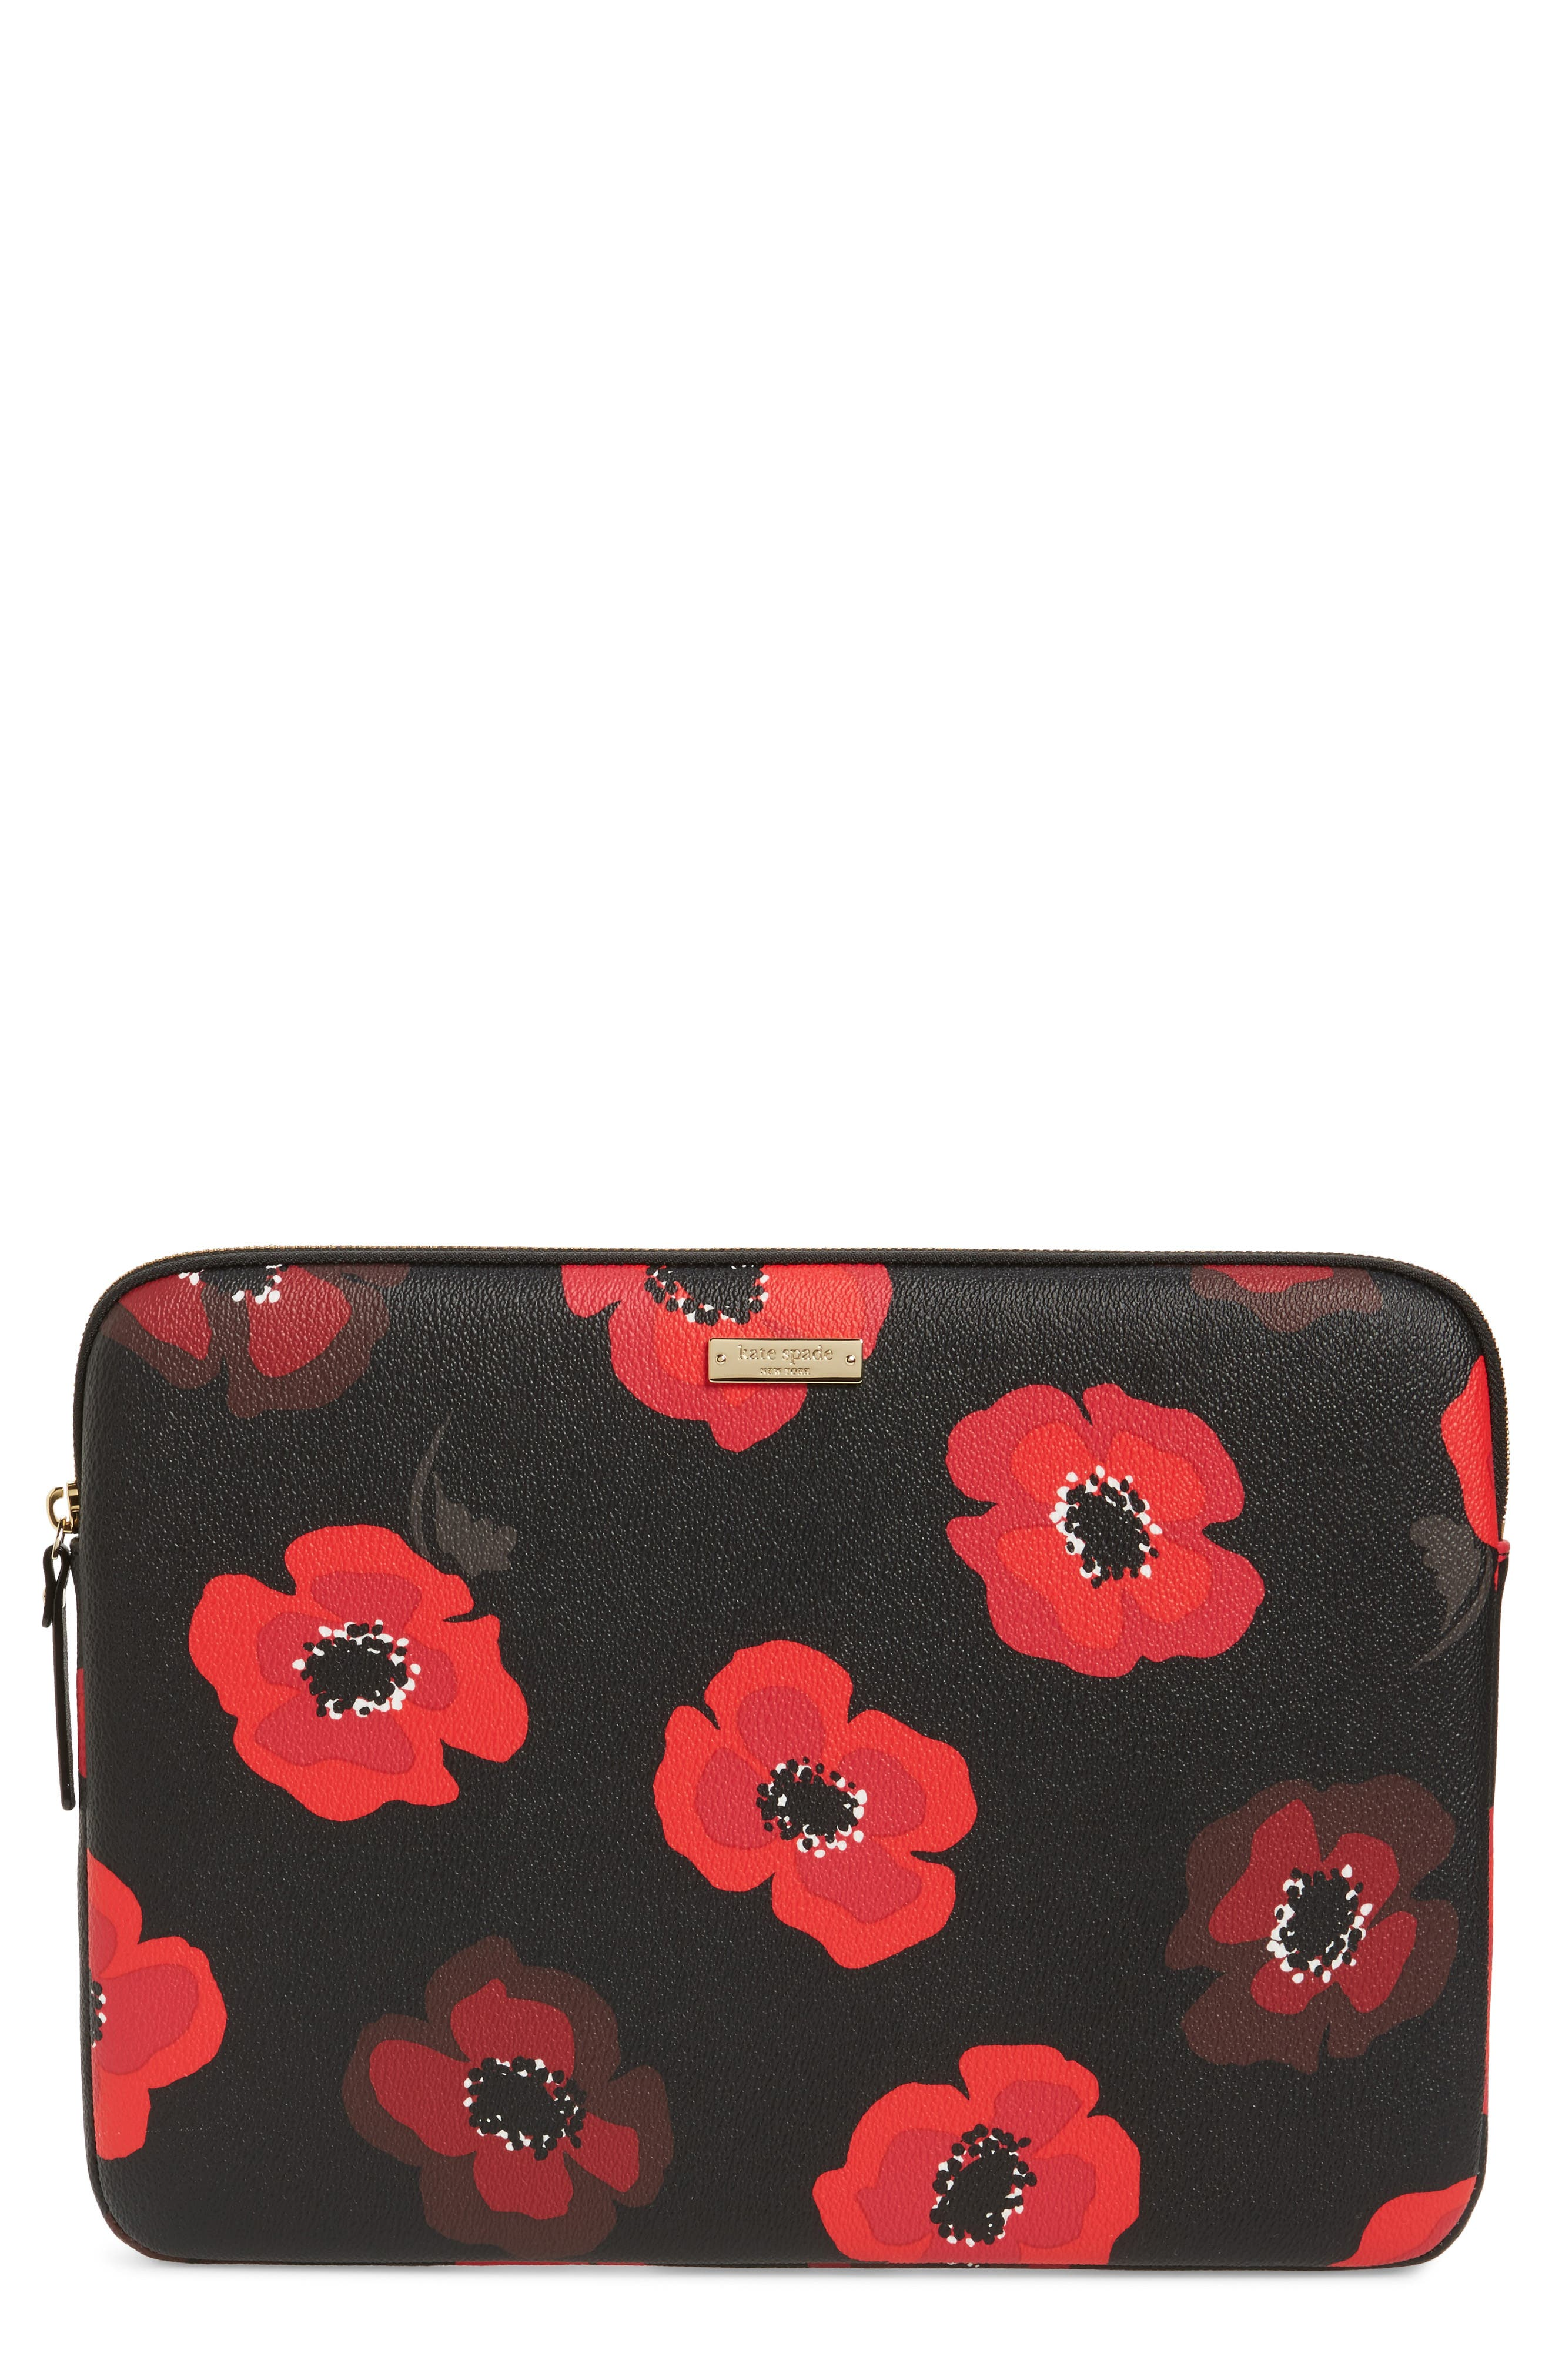 Main Image - kate spade new york poppy 13-inch laptop sleeve